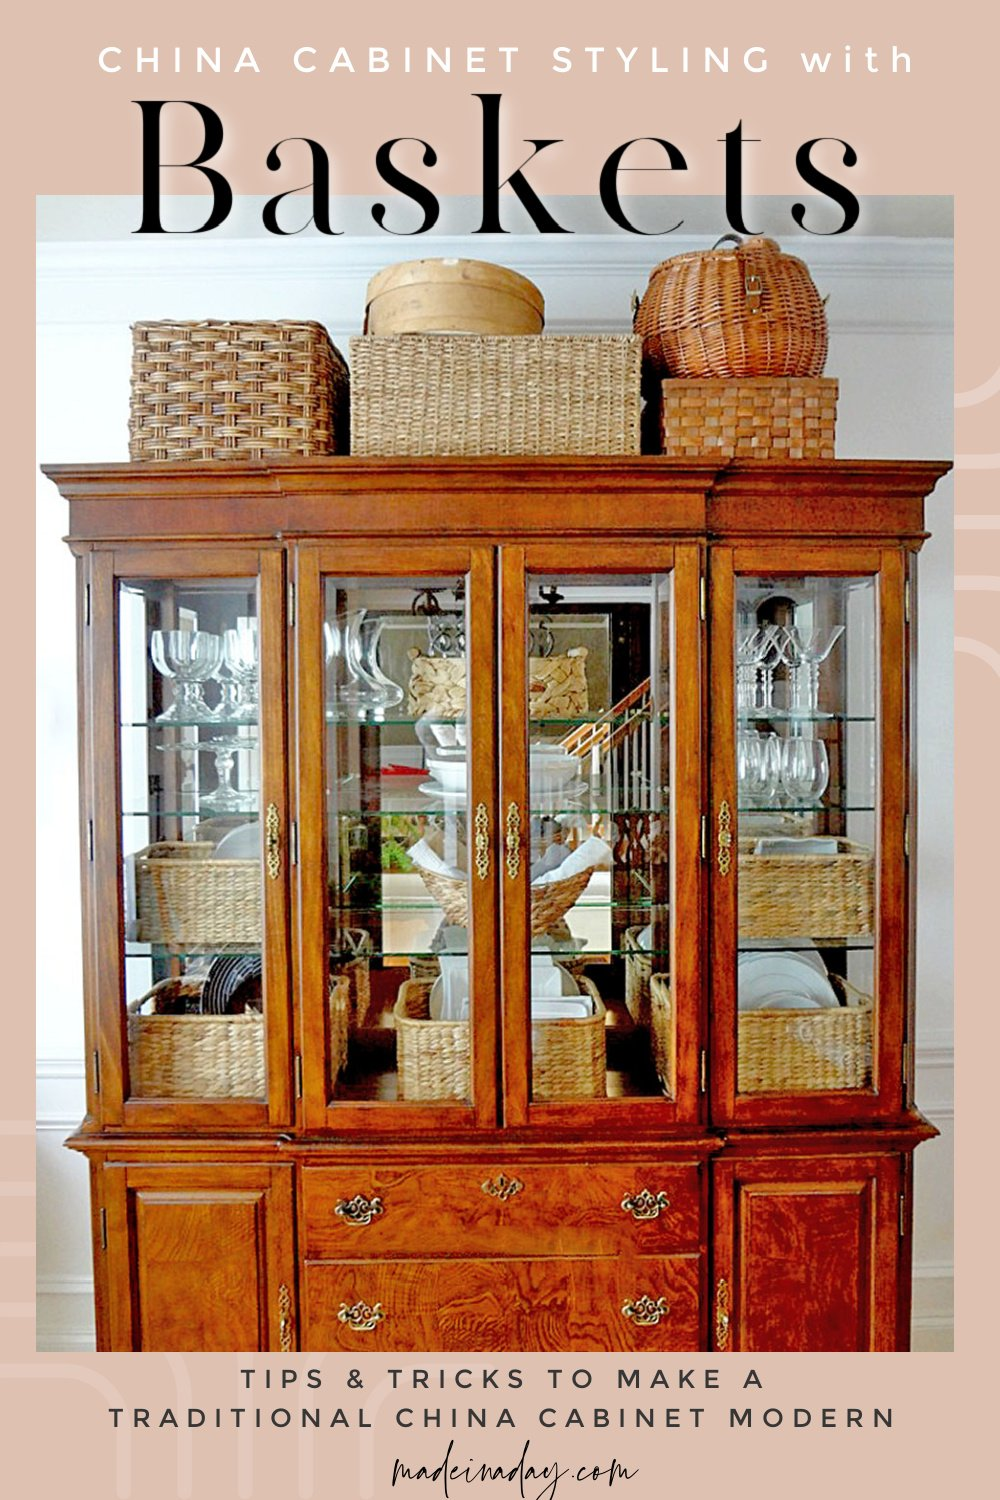 Design Hack! Display Dishes in China Cabinet with Baskets